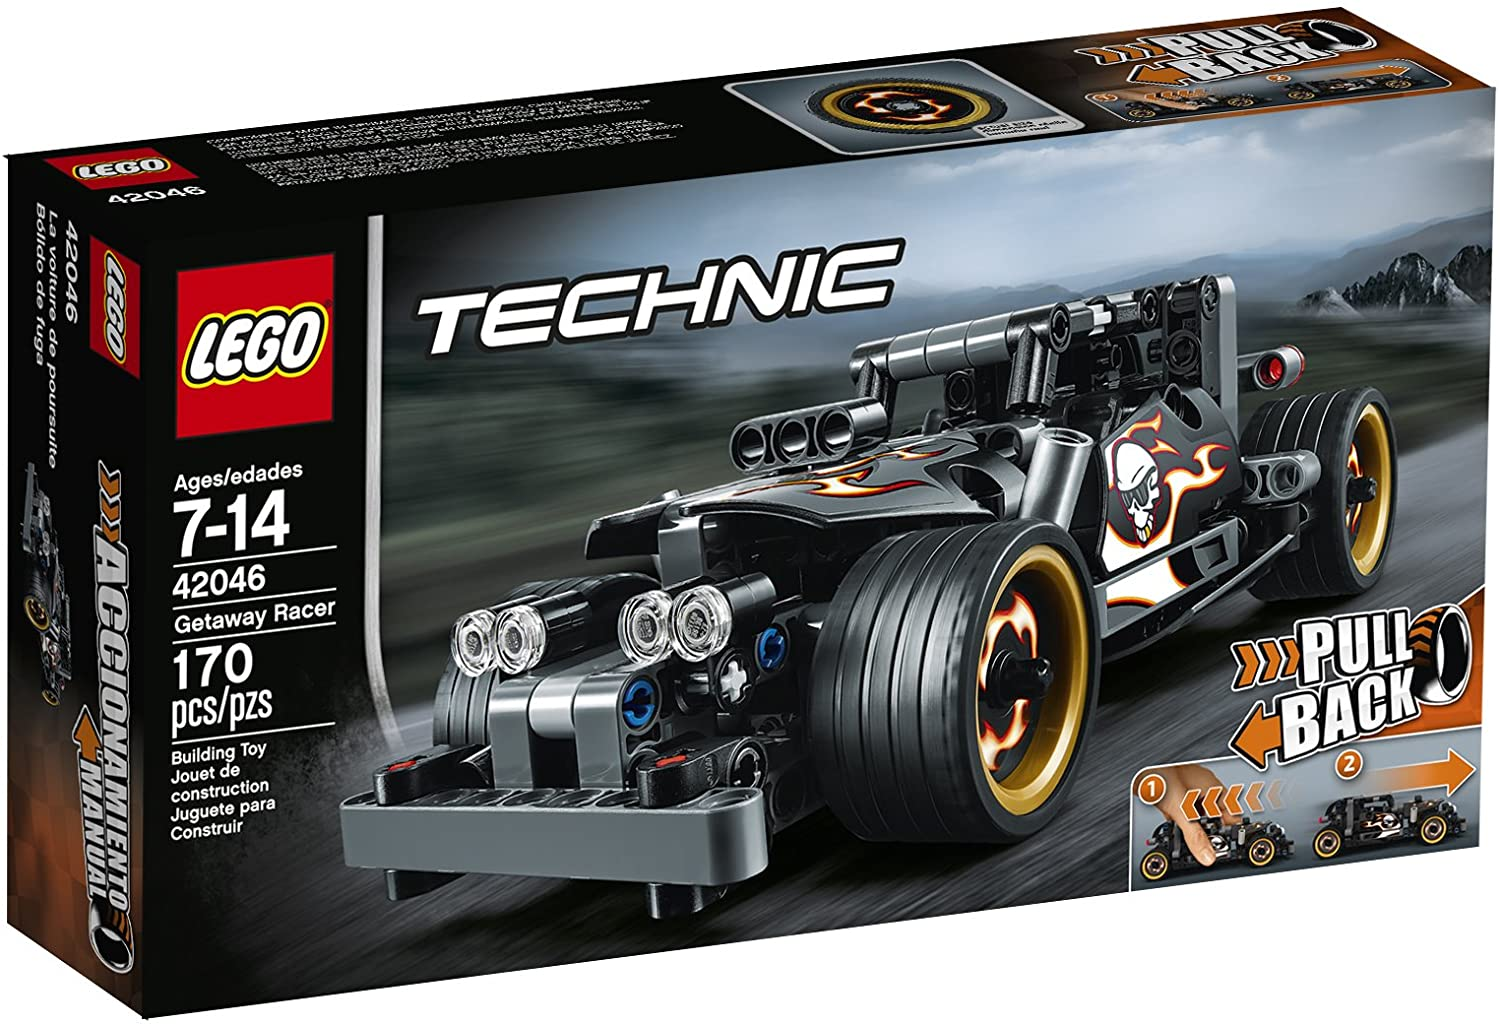 Lego Technic Getaway Racer Building Kit